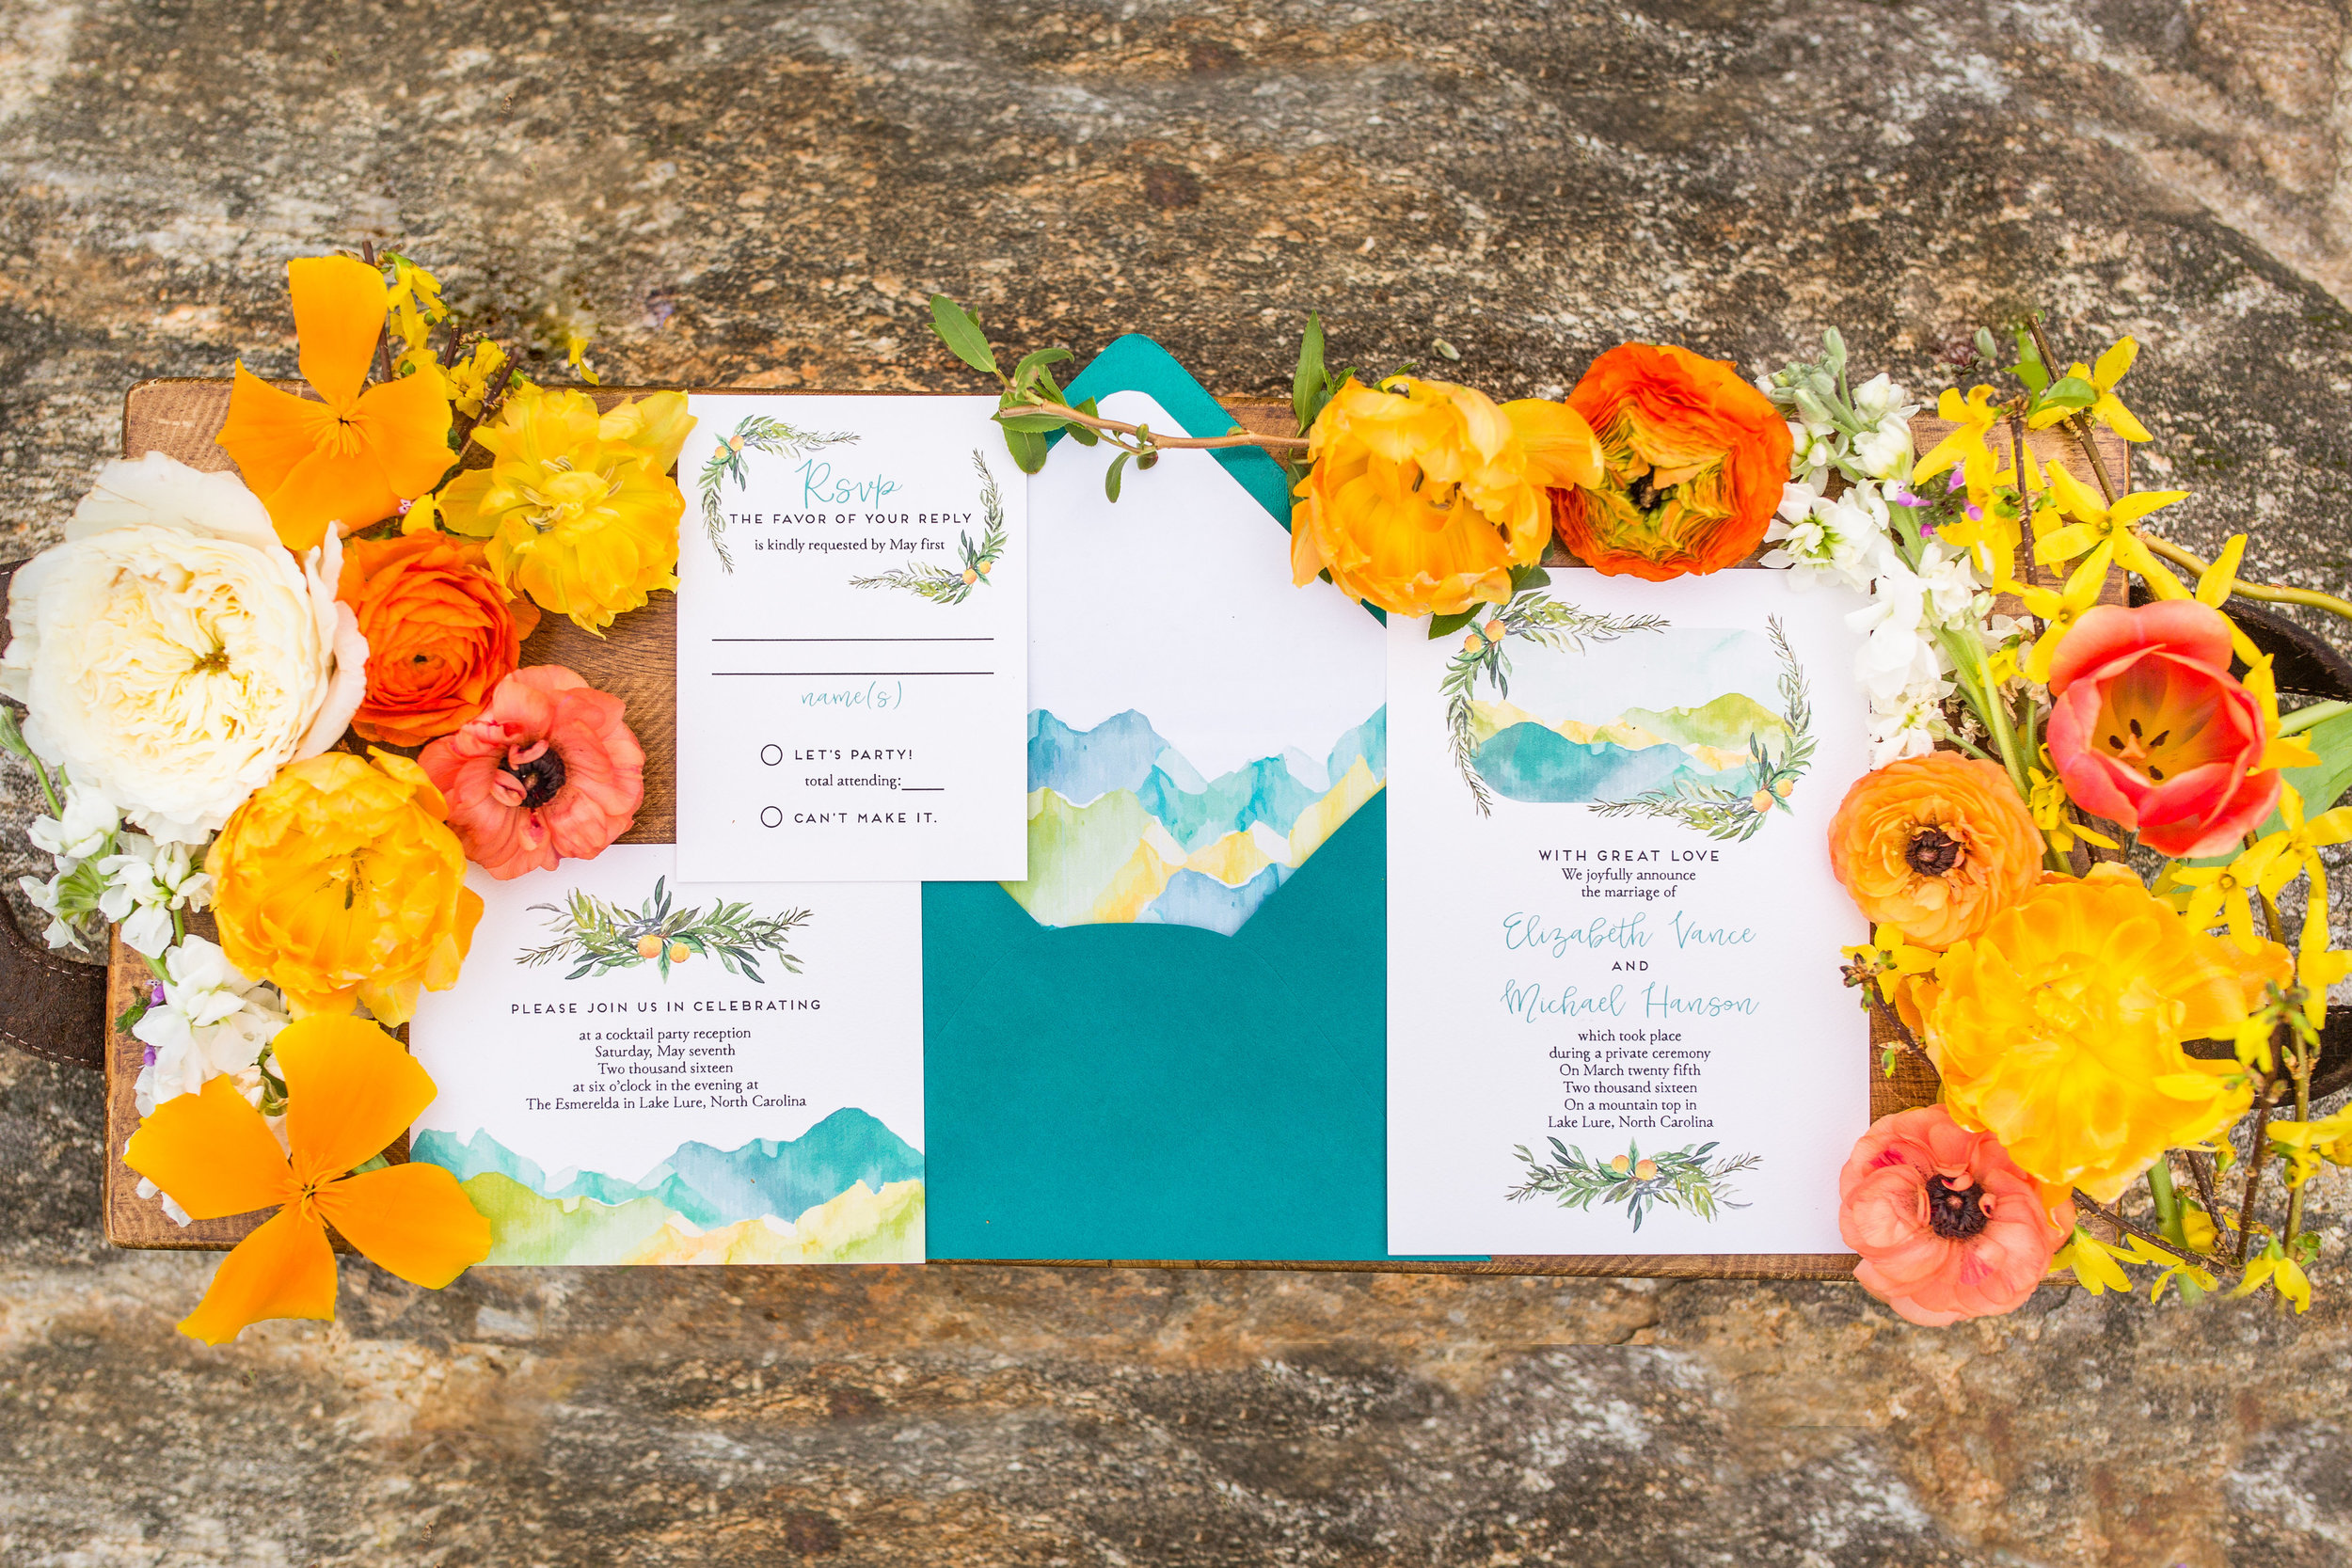 Teal Custom Wedding Invitations for Rustic Mountain Wedding or Elopement